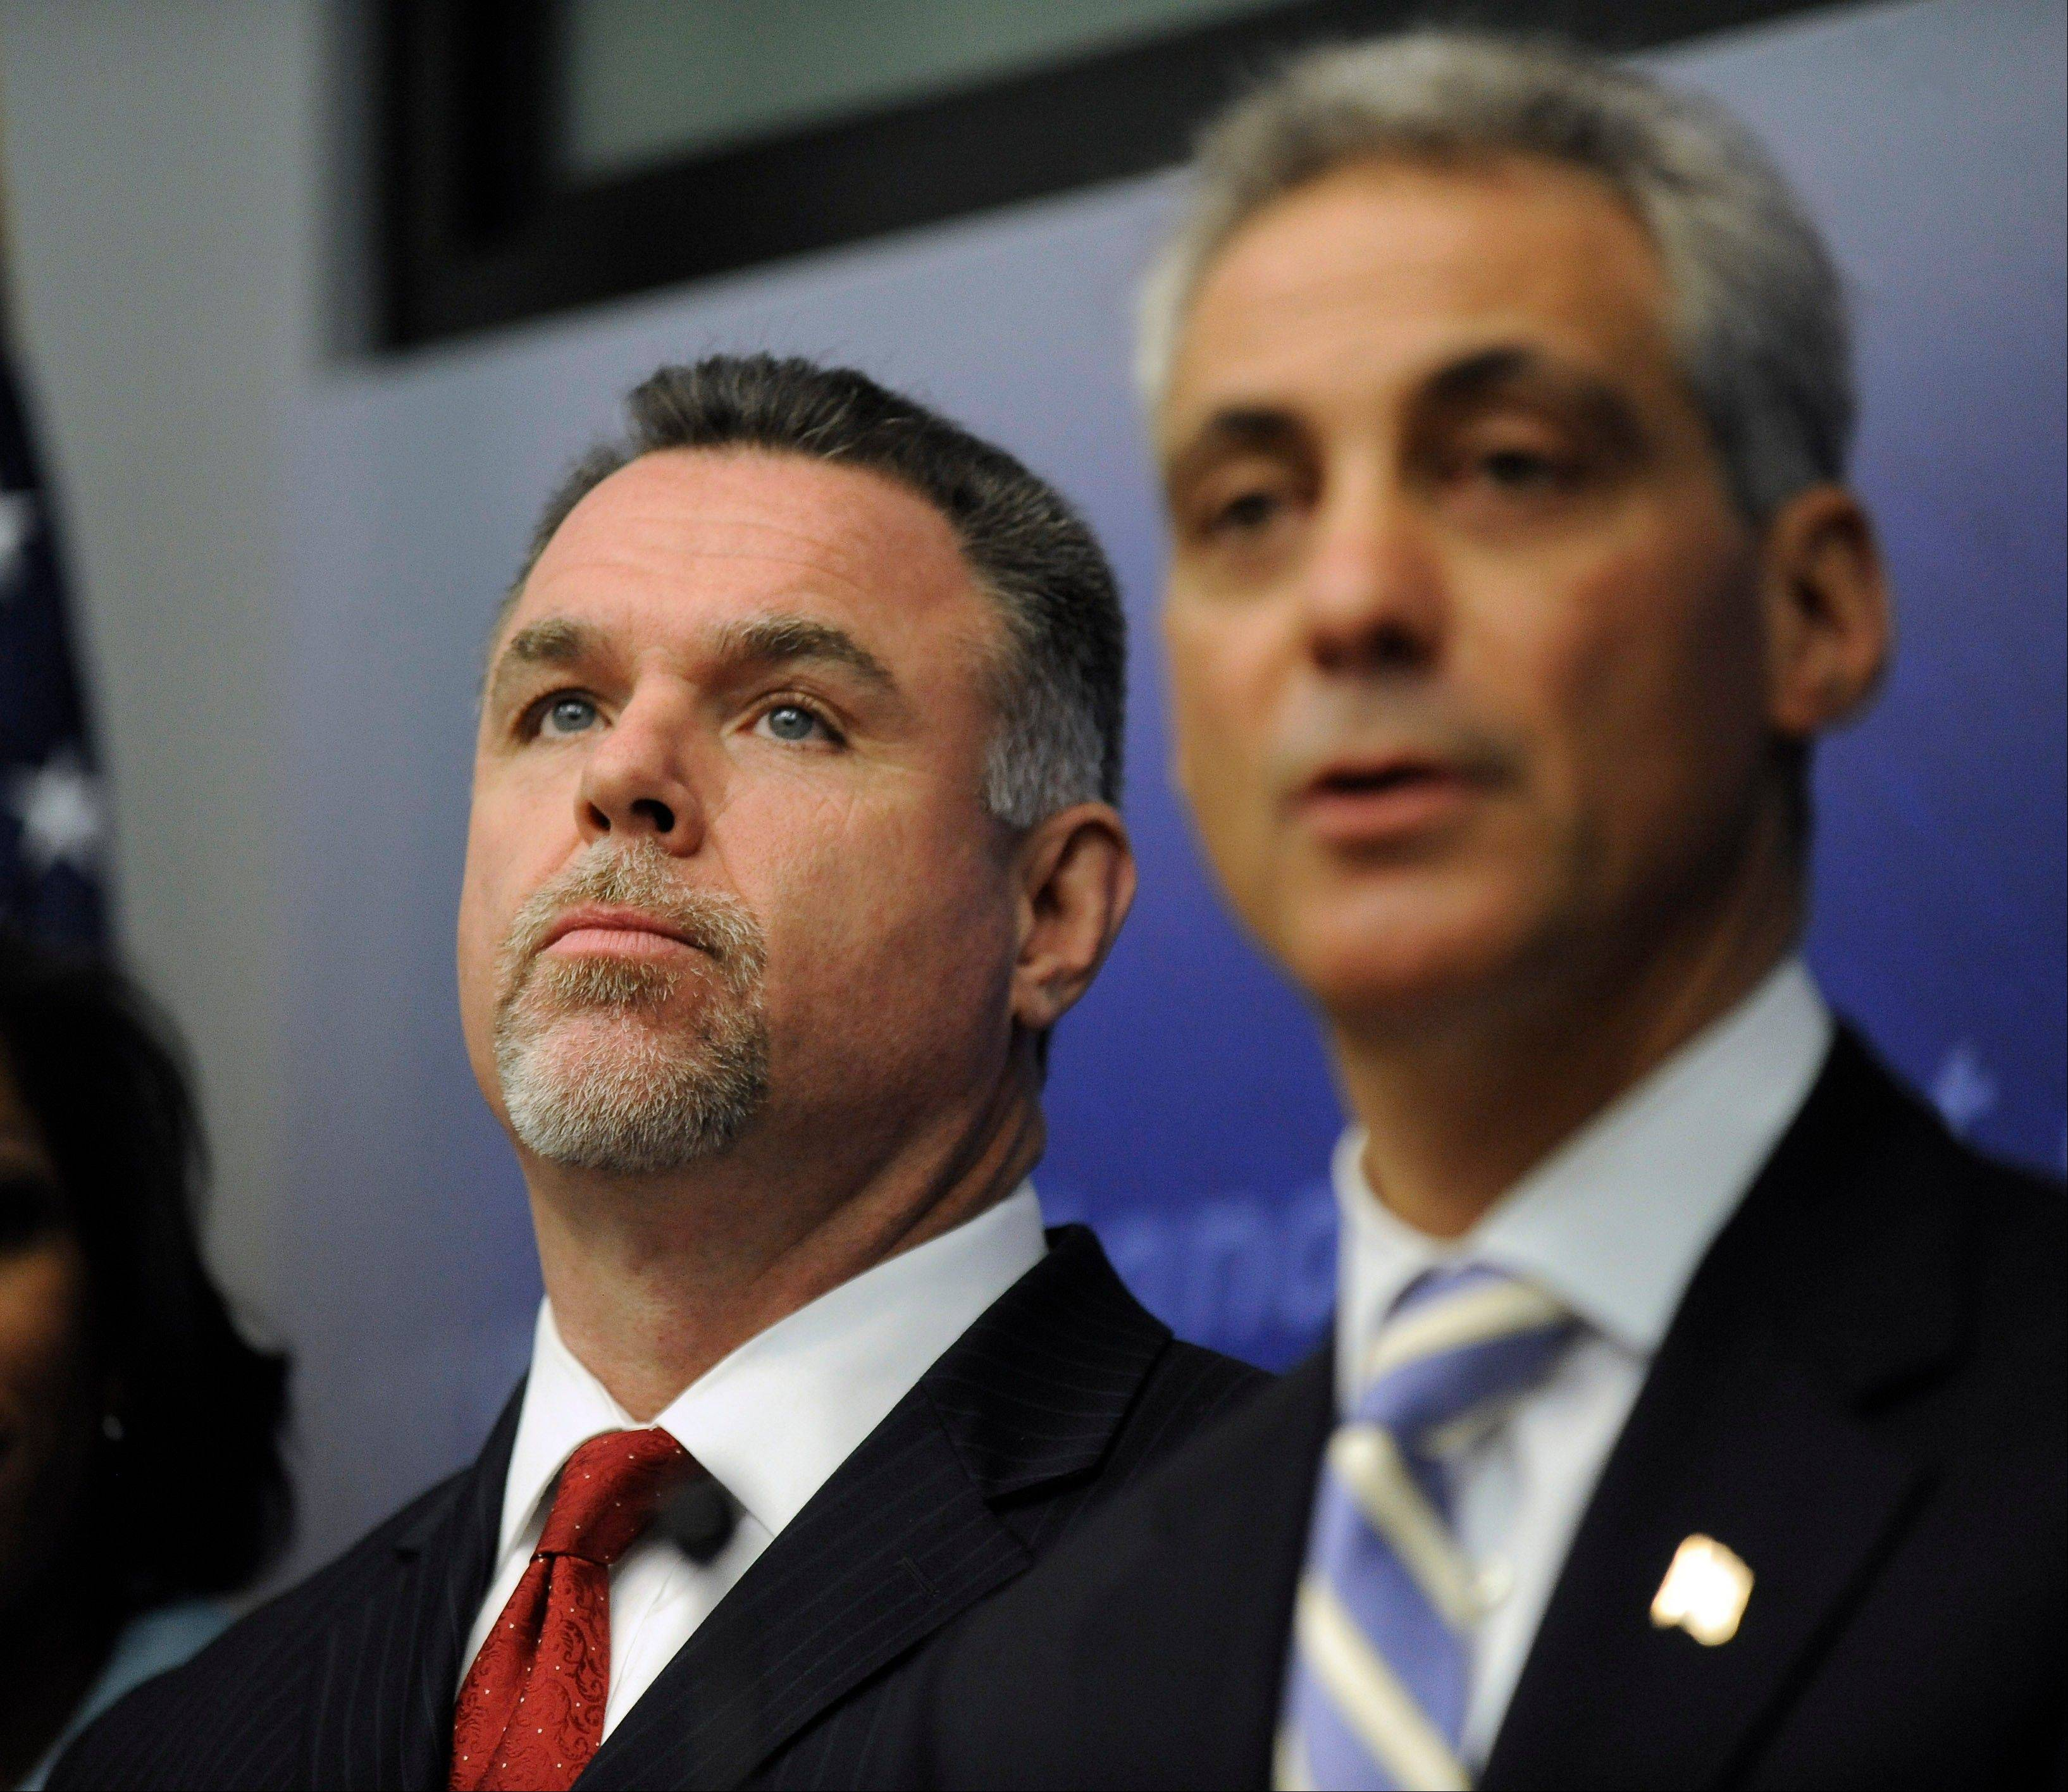 Mayors and police chiefs routinely clash about budgets before compromises are reached. But the episode in which Chicago police Superintendent Garry McCarthy put a dollar figure on cuts — something Mayor Rahm Emanuel has not done — marks the first suggestion, at least publicly, that the mayor and the superintendent he plucked from Newark, N.J., may not be in complete agreement.